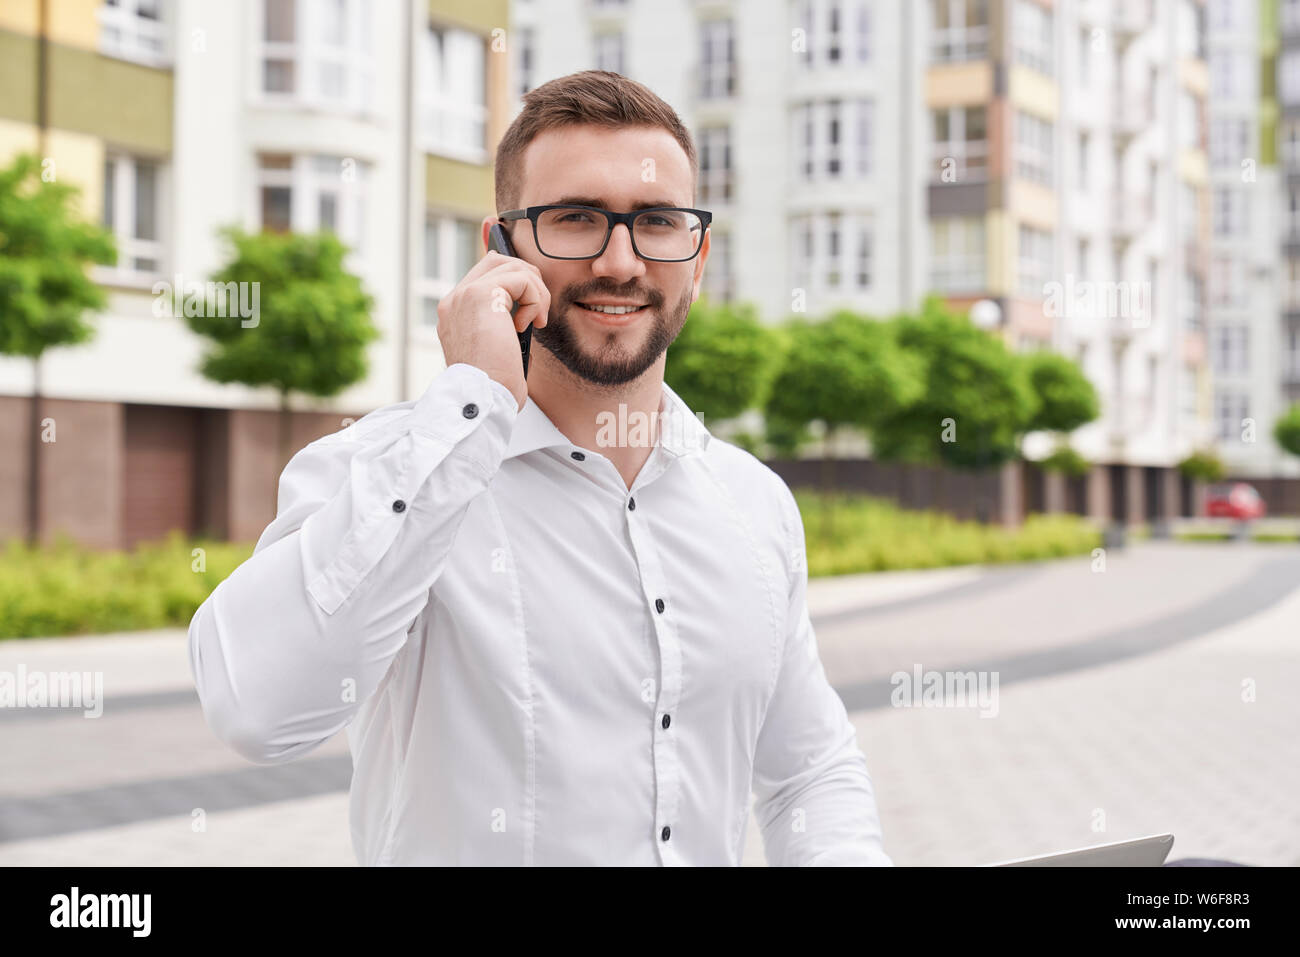 Close up of young, stylish, bearded man talking by phone on background of modern city with multistory houses. Positive businessman in glasses wearing in white shirt looking at camera. Stock Photo